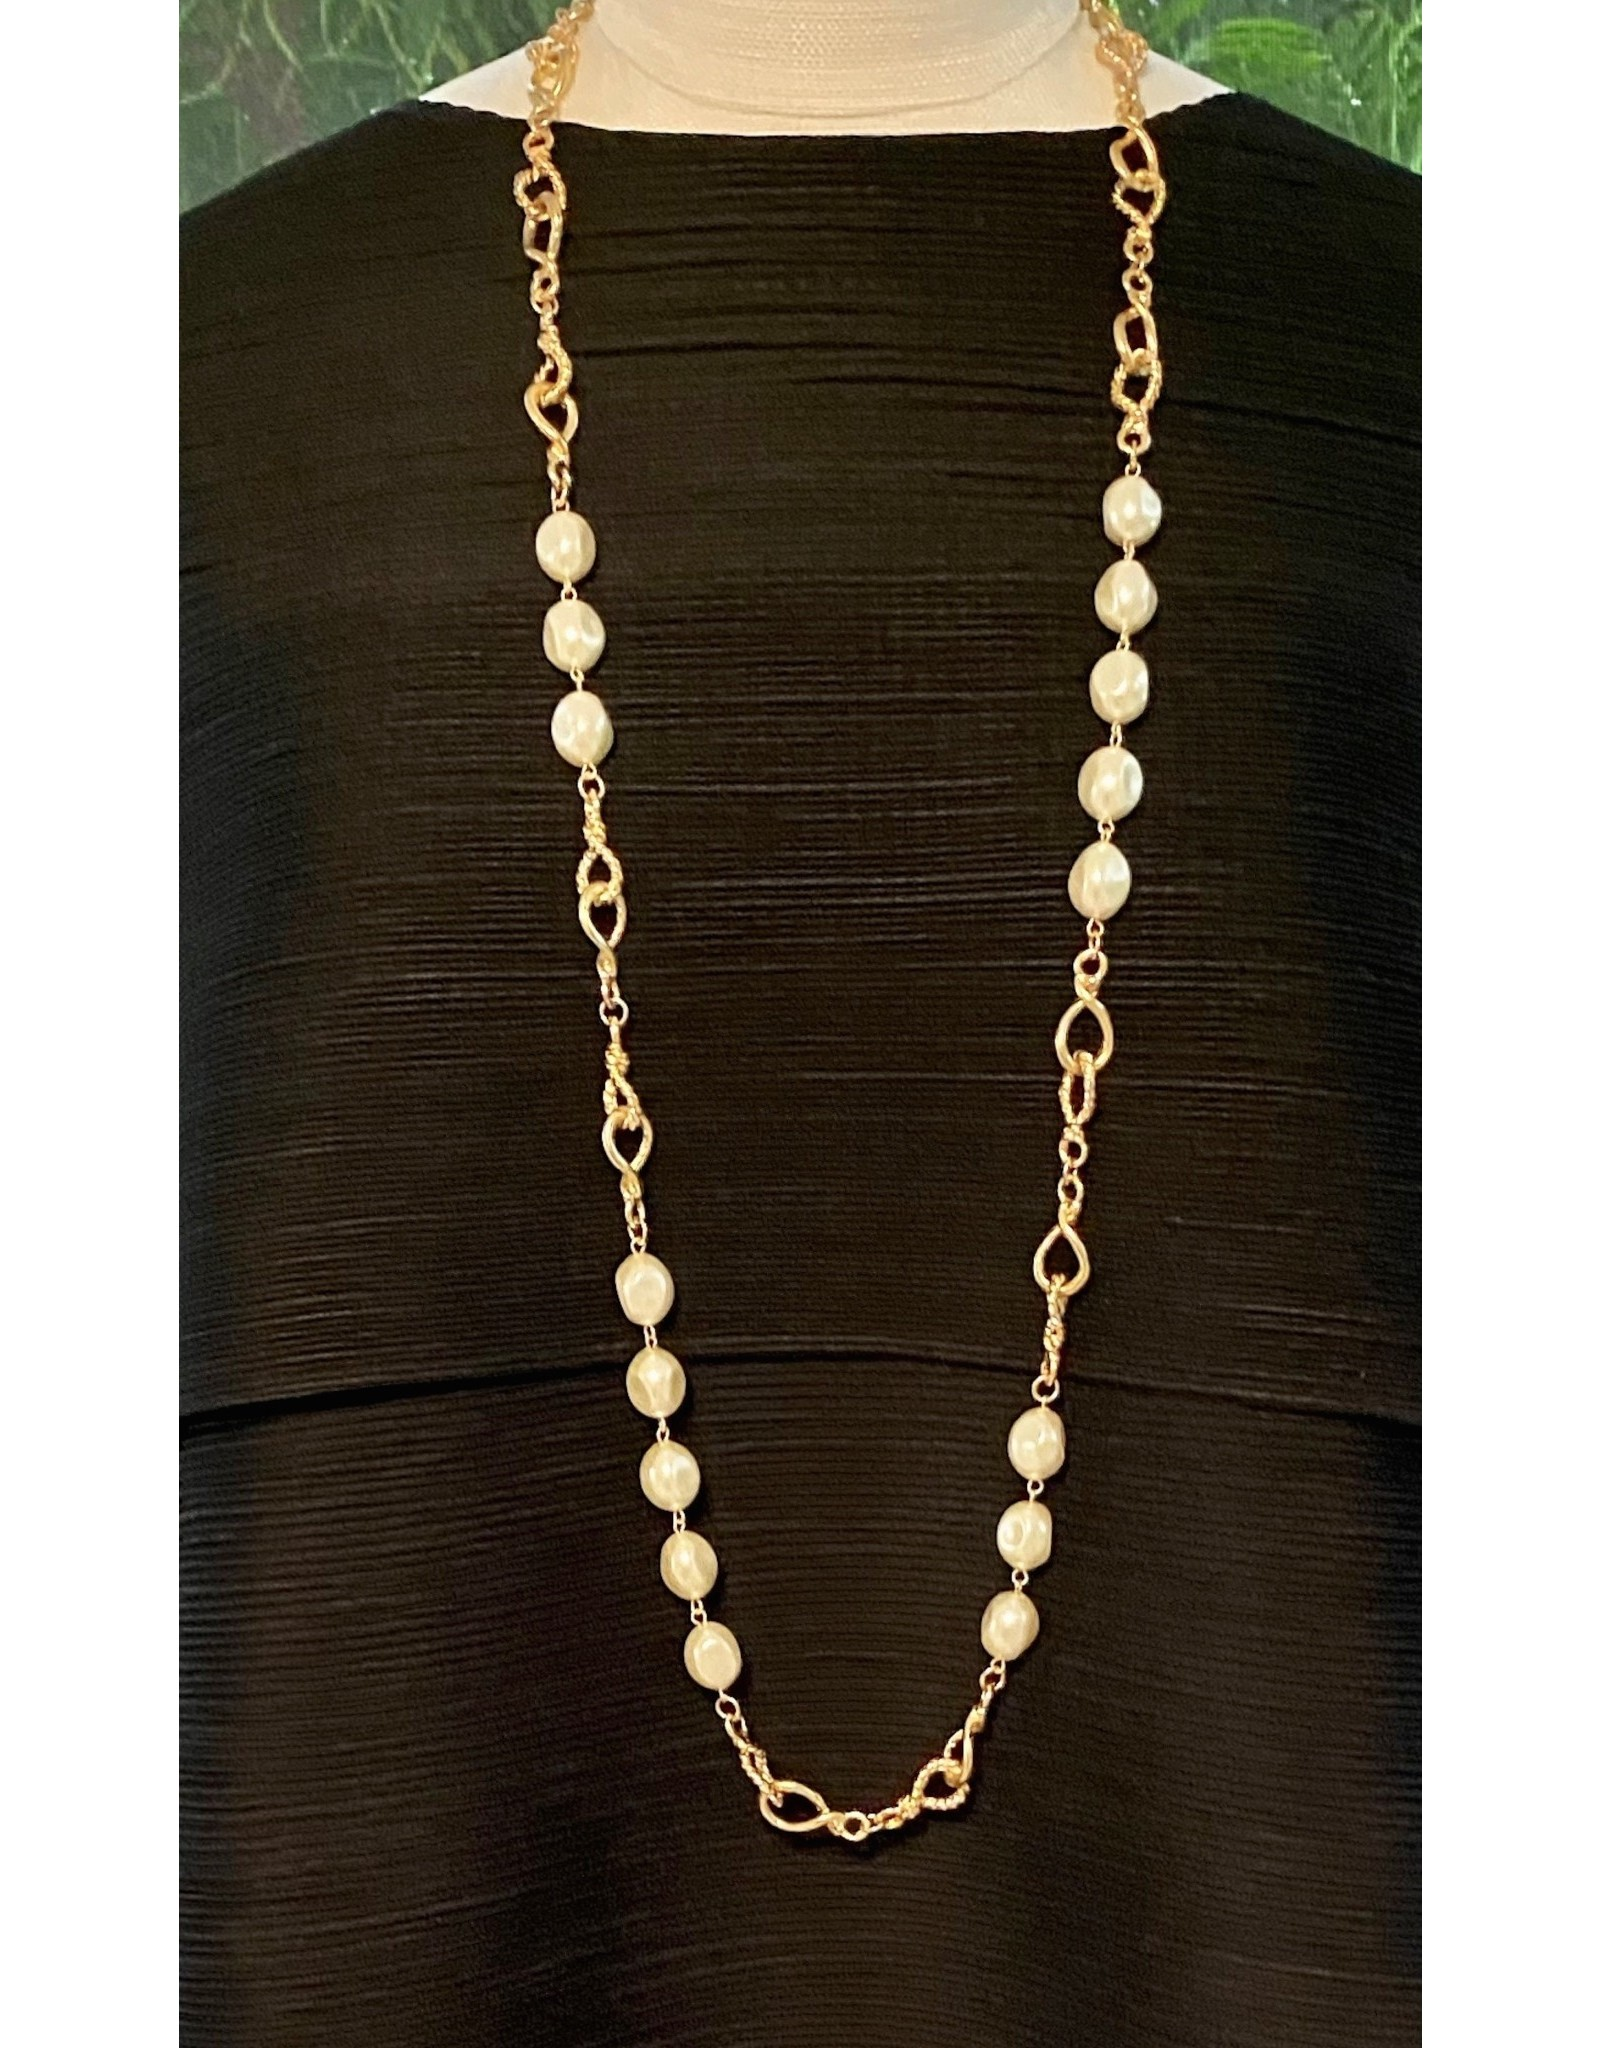 Karin Sultan Gold and Pearl Long Necklace